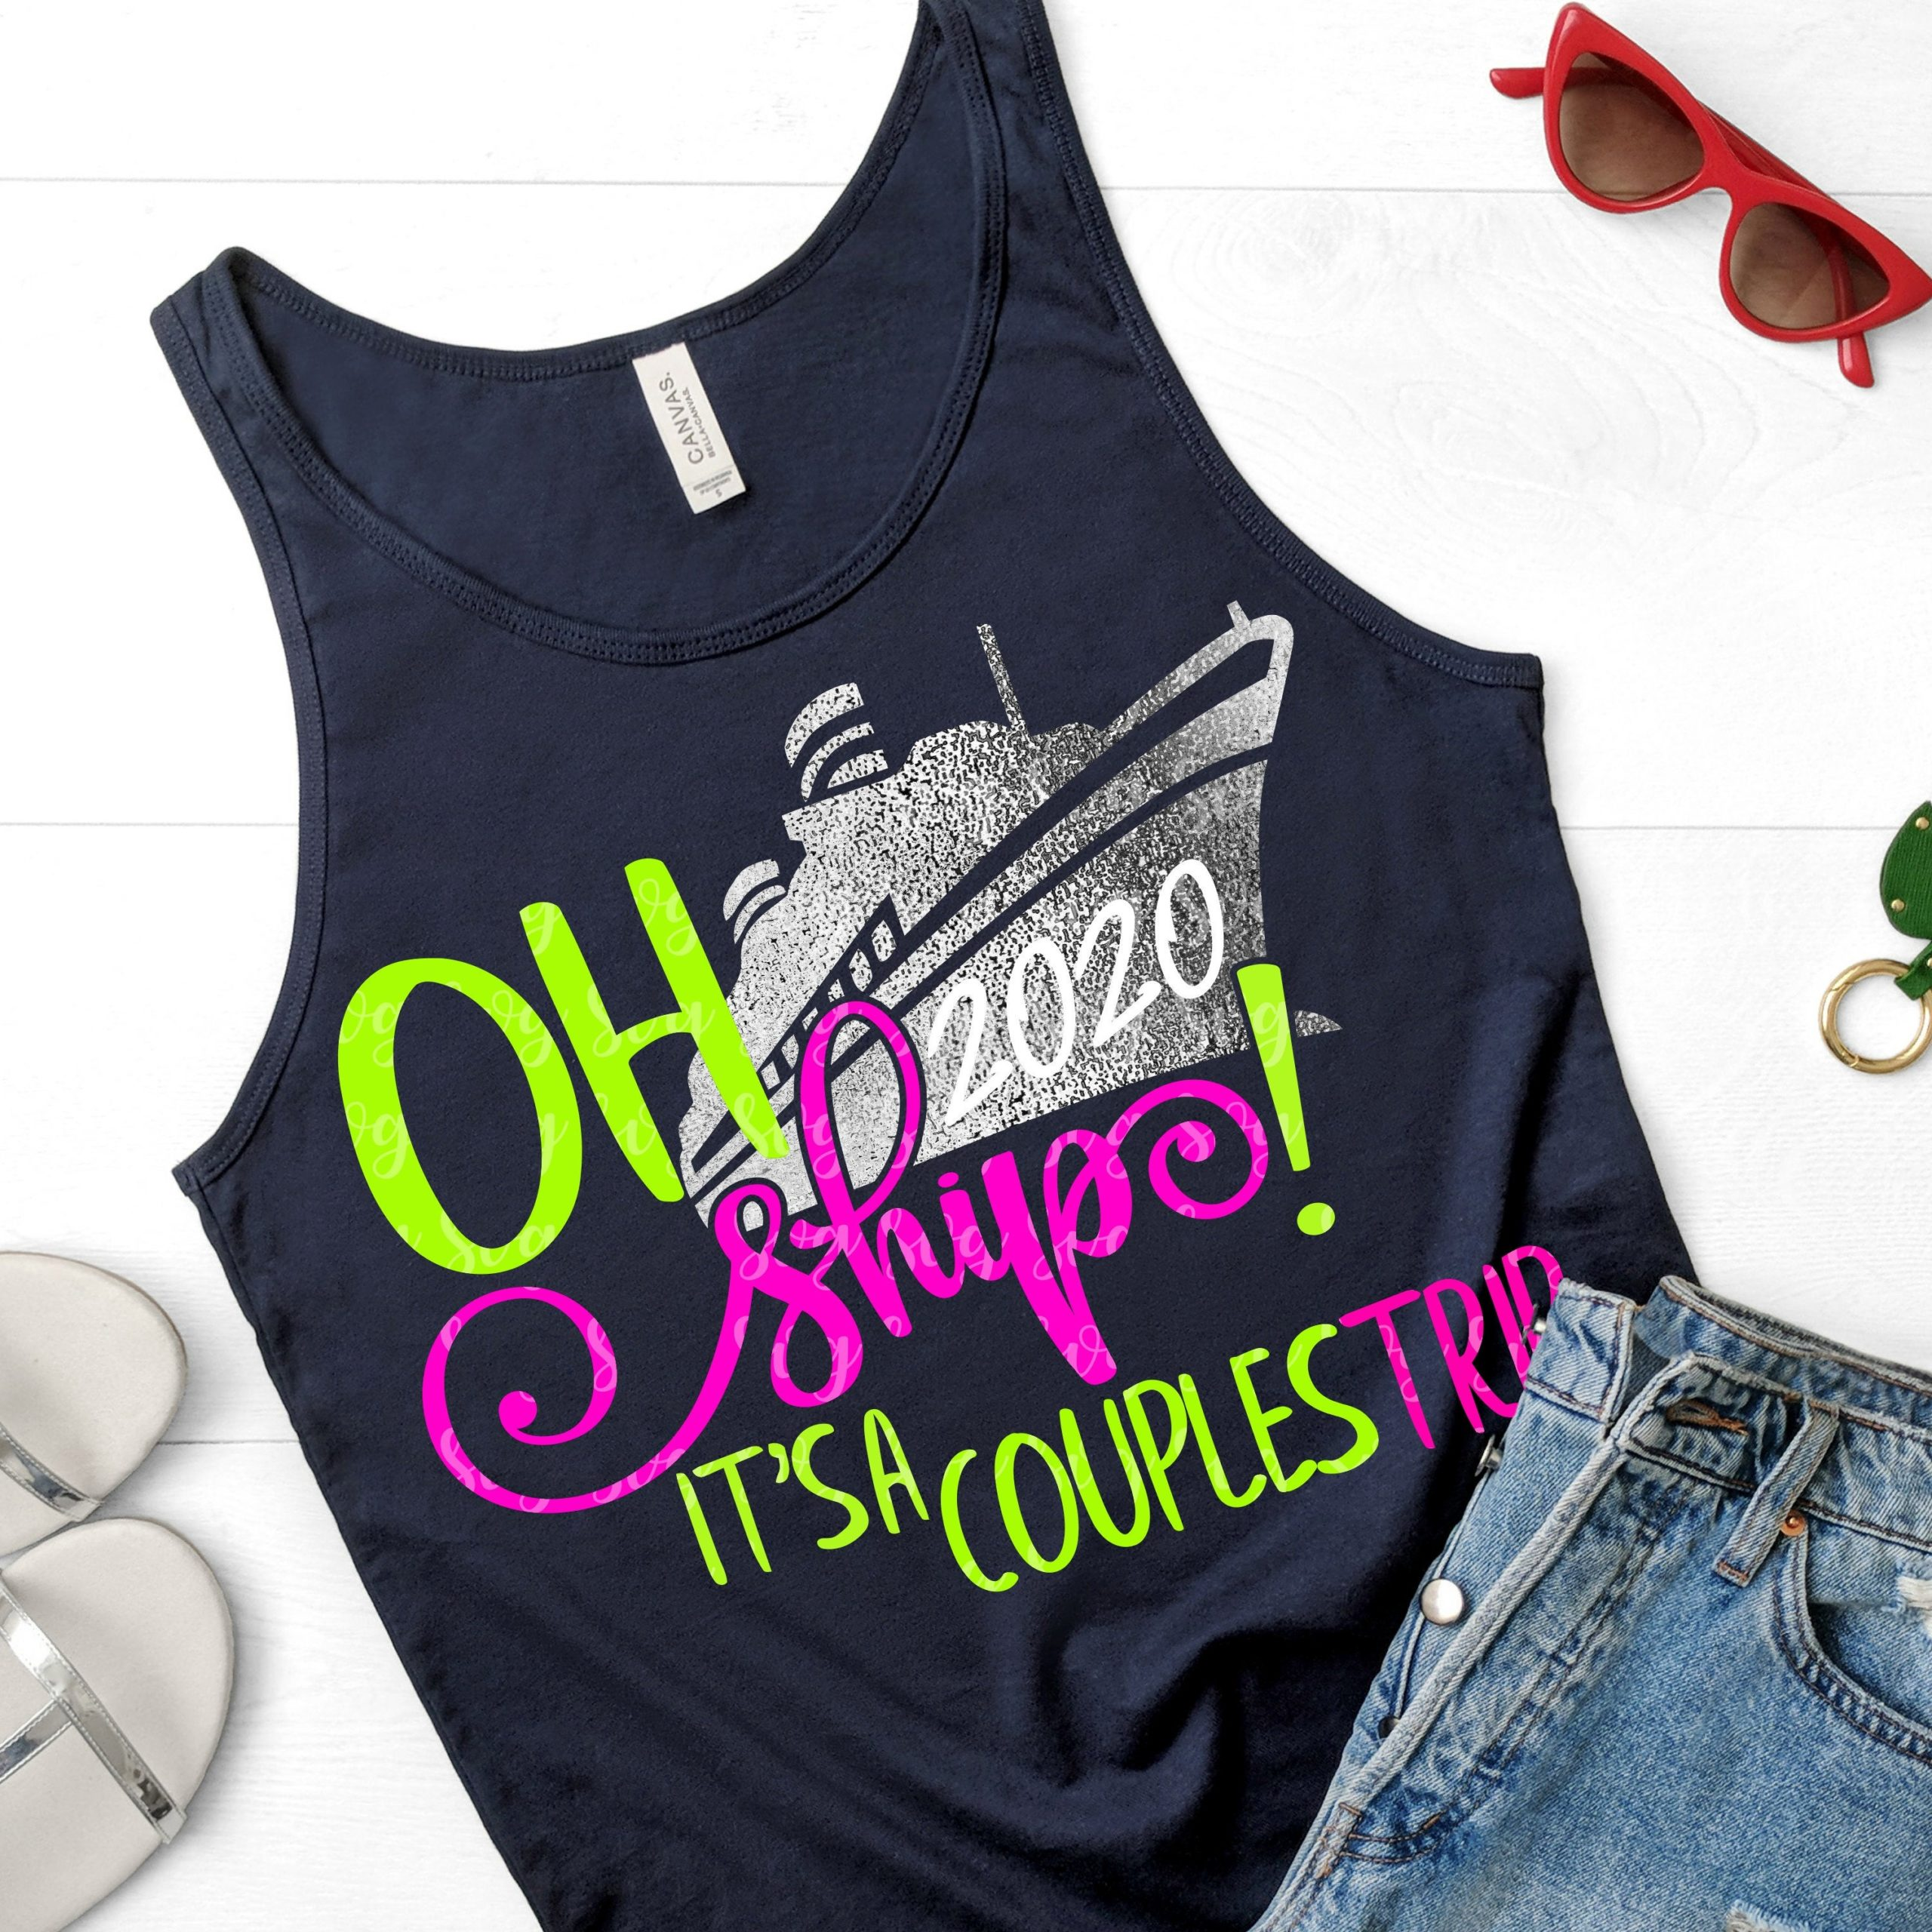 Oh Ship Svg It S A Couples Trip Svg Cruise Svg Couples Vacation Svg Summer Svg Nautical Svg Boat Svg Cruising Vacation Svg Cruise Ship Svg Svg For Cricut